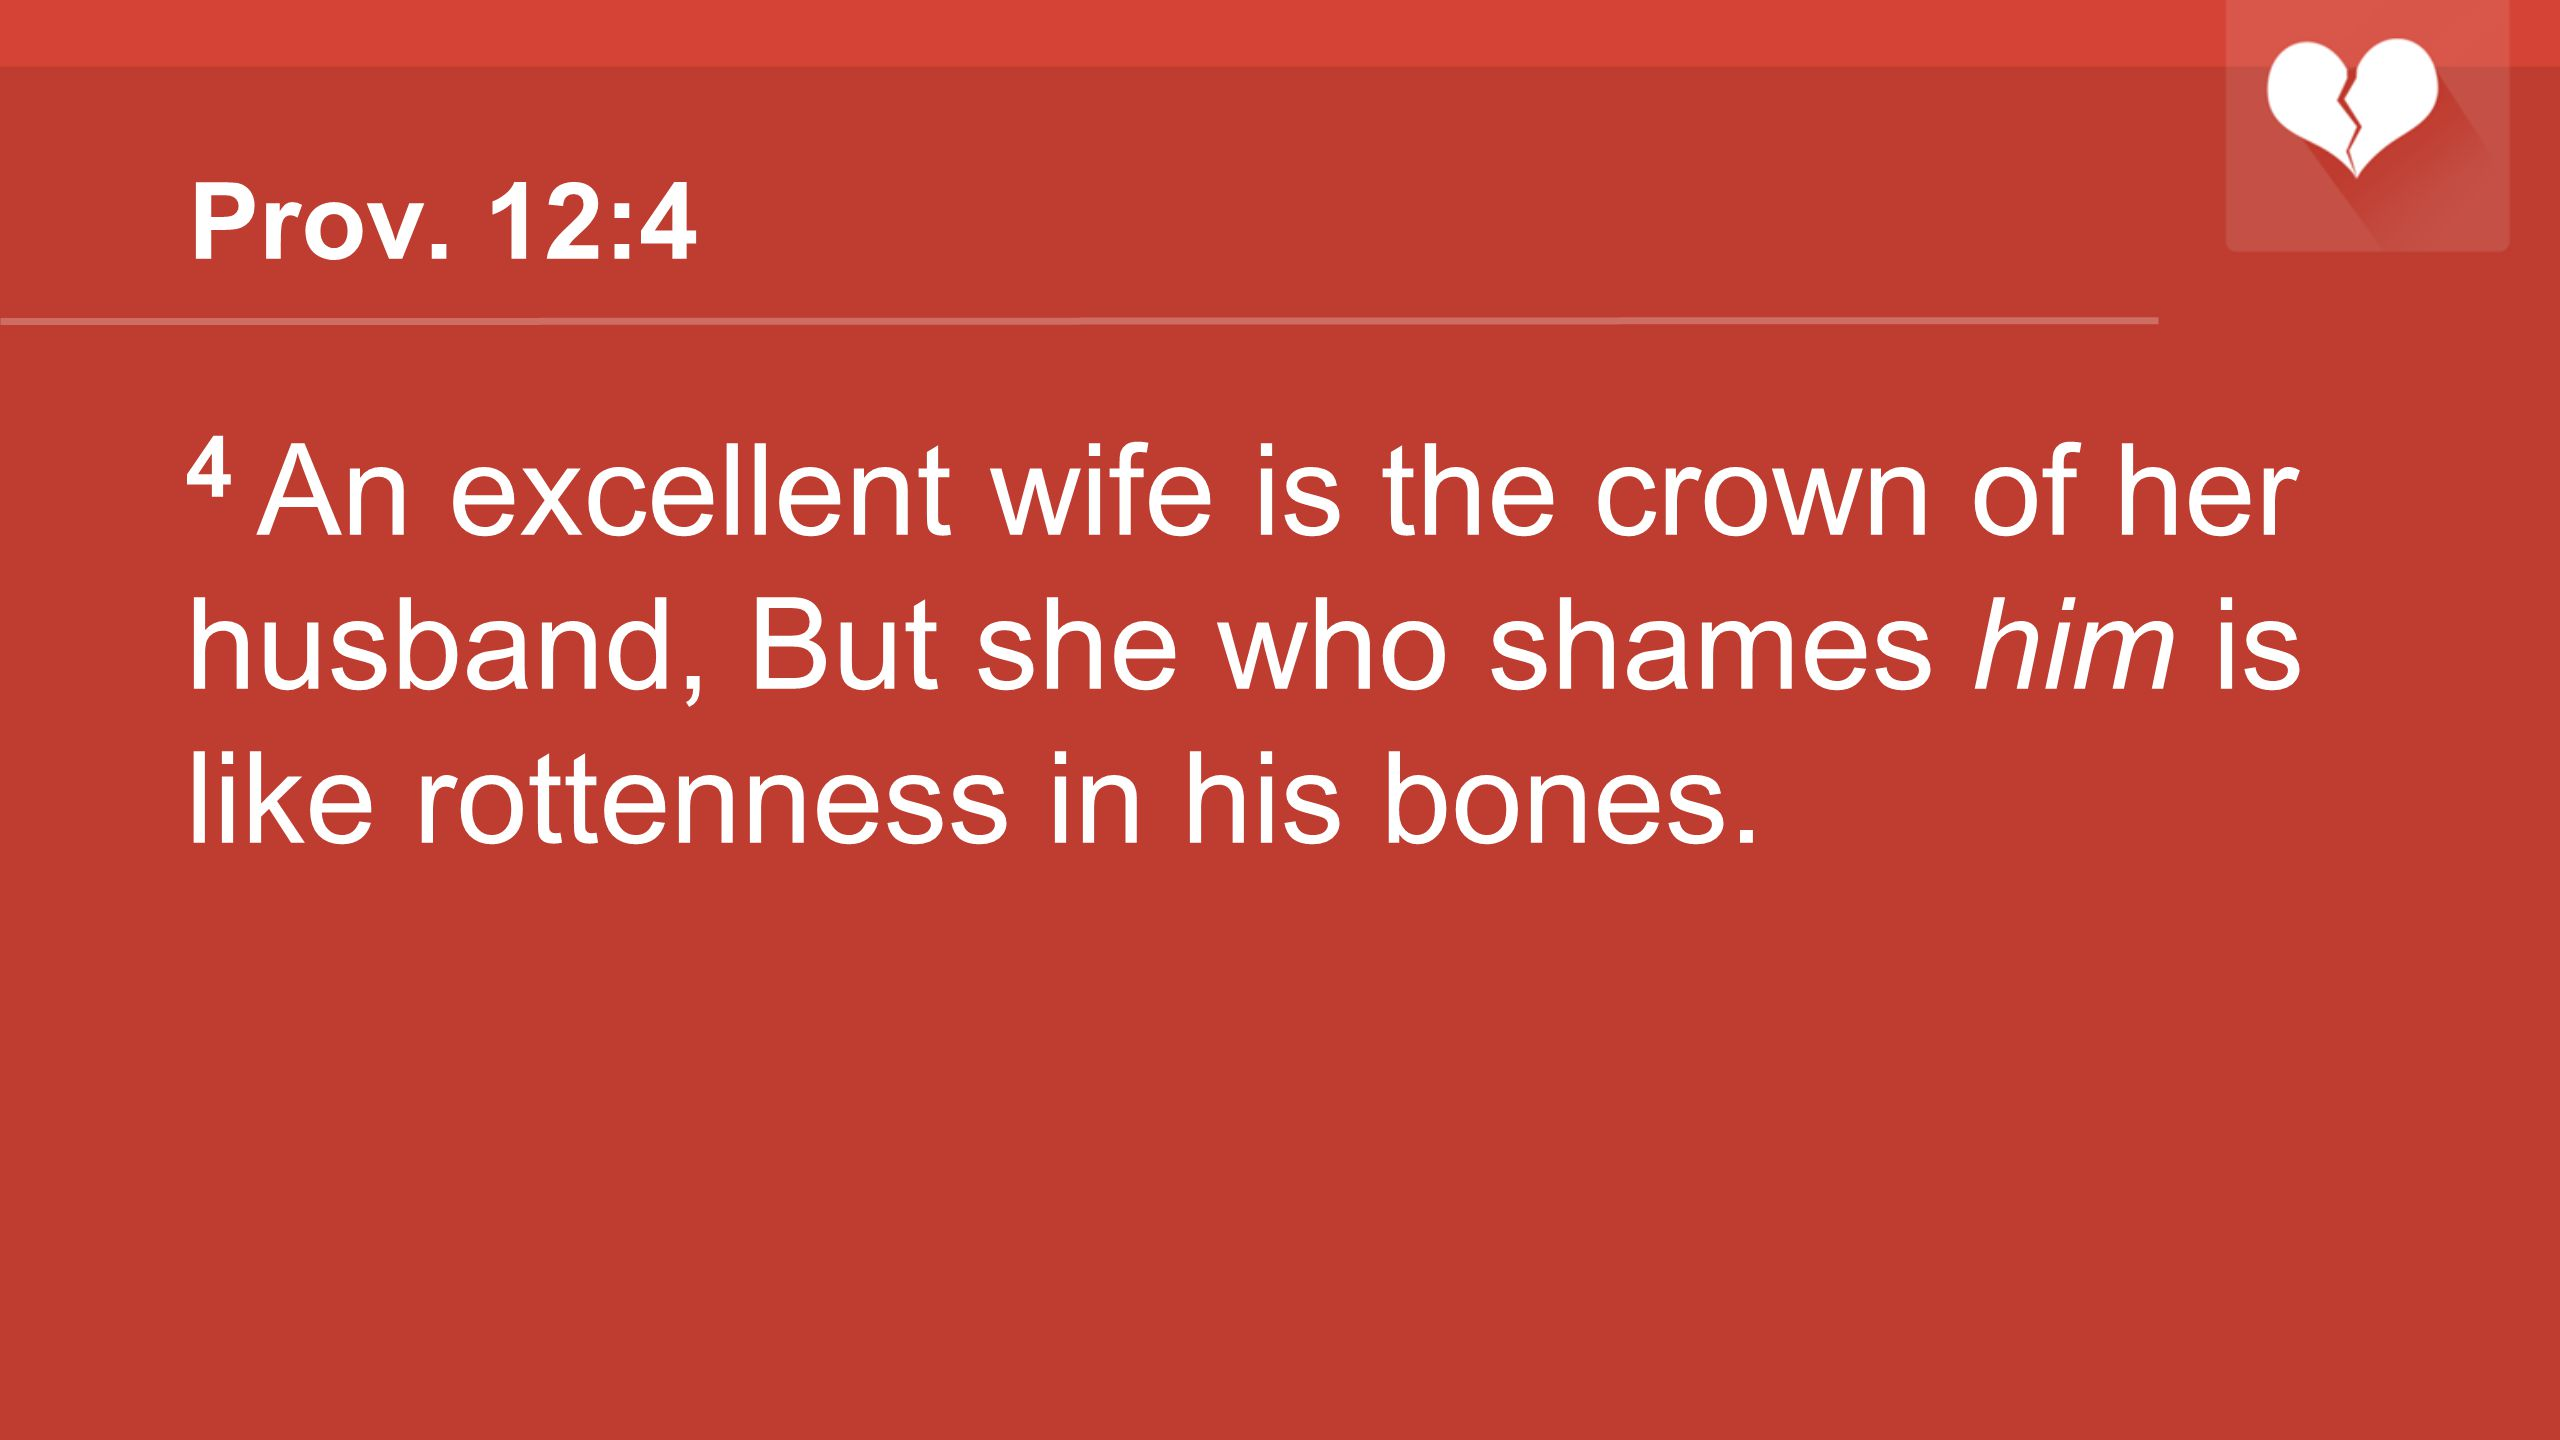 Prov. 12:4 4 An excellent wife is the crown of her husband, But she who shames him is like rottenness in his bones.